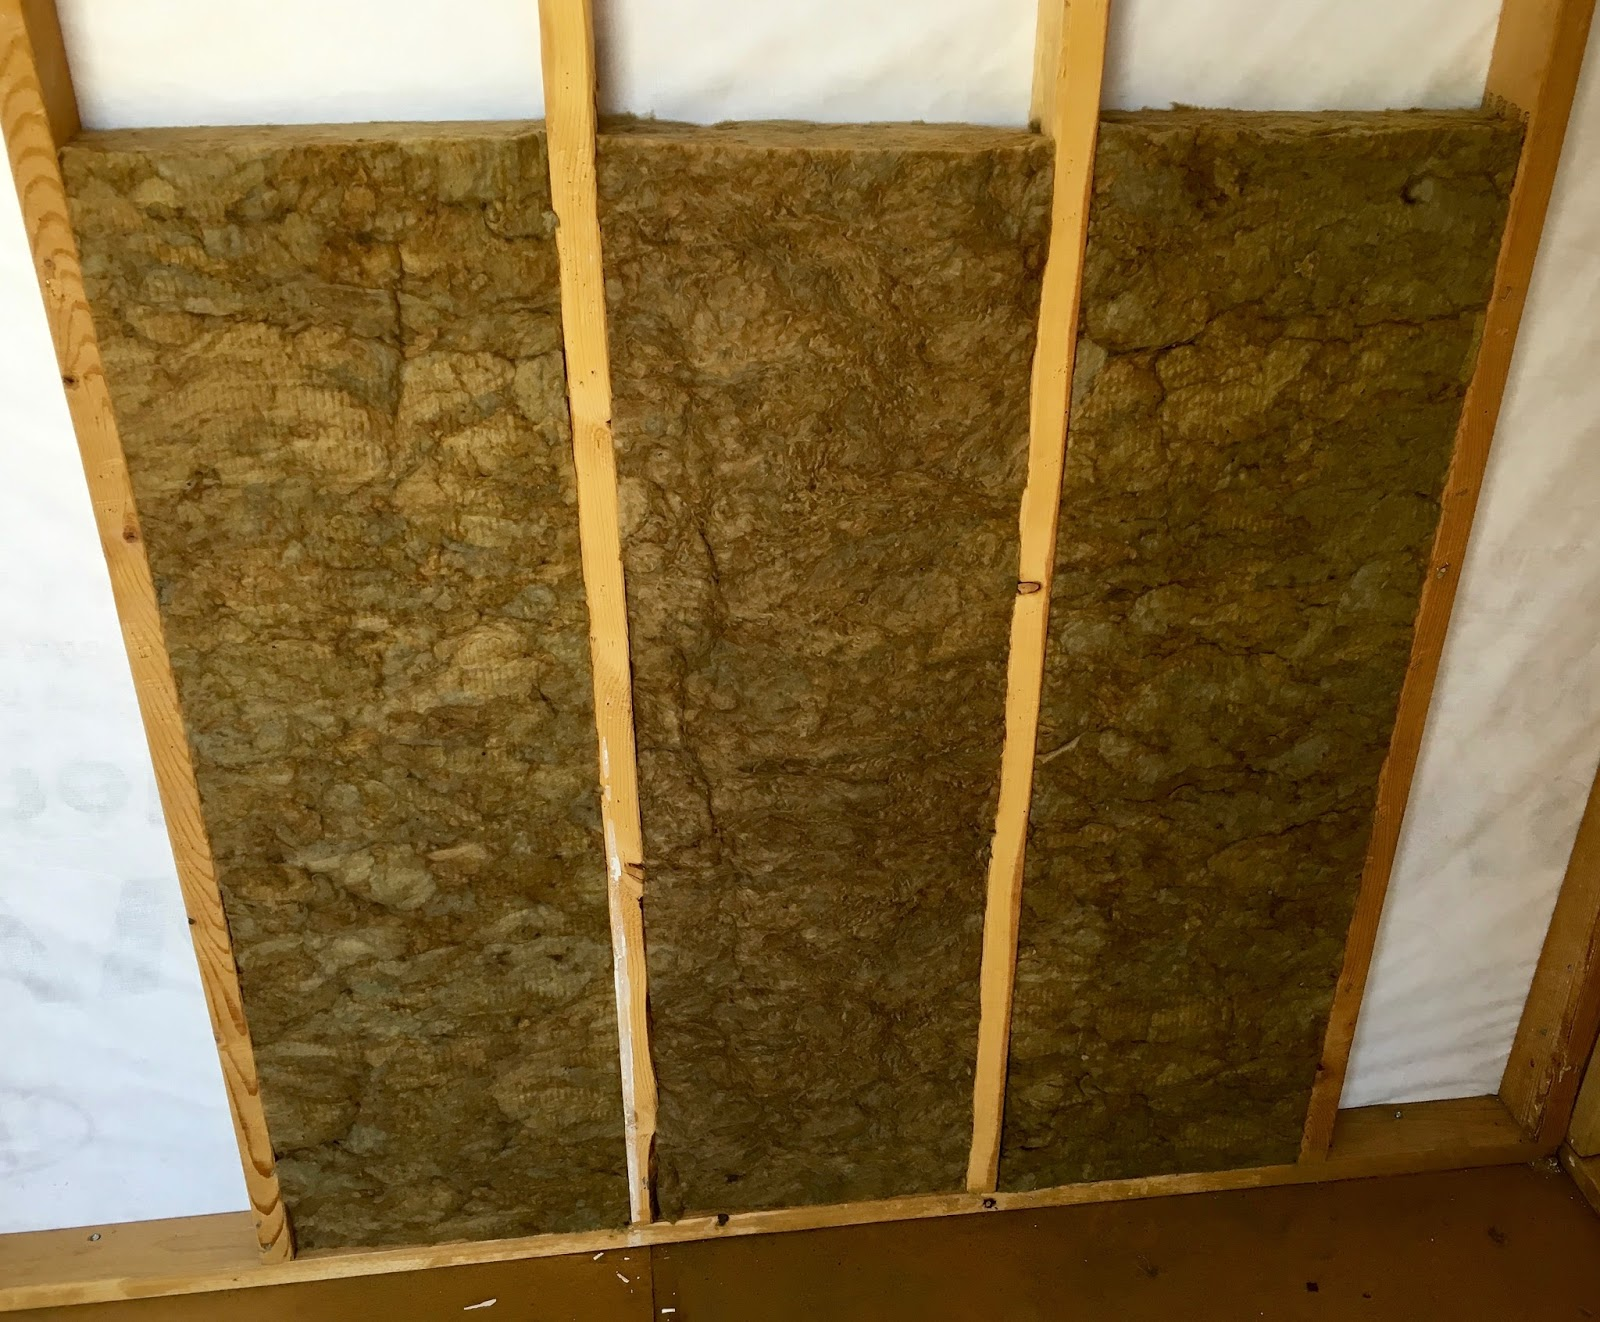 Syonyk 39 s project blog solar shed part 4 wall insulation 3 mineral wool insulation